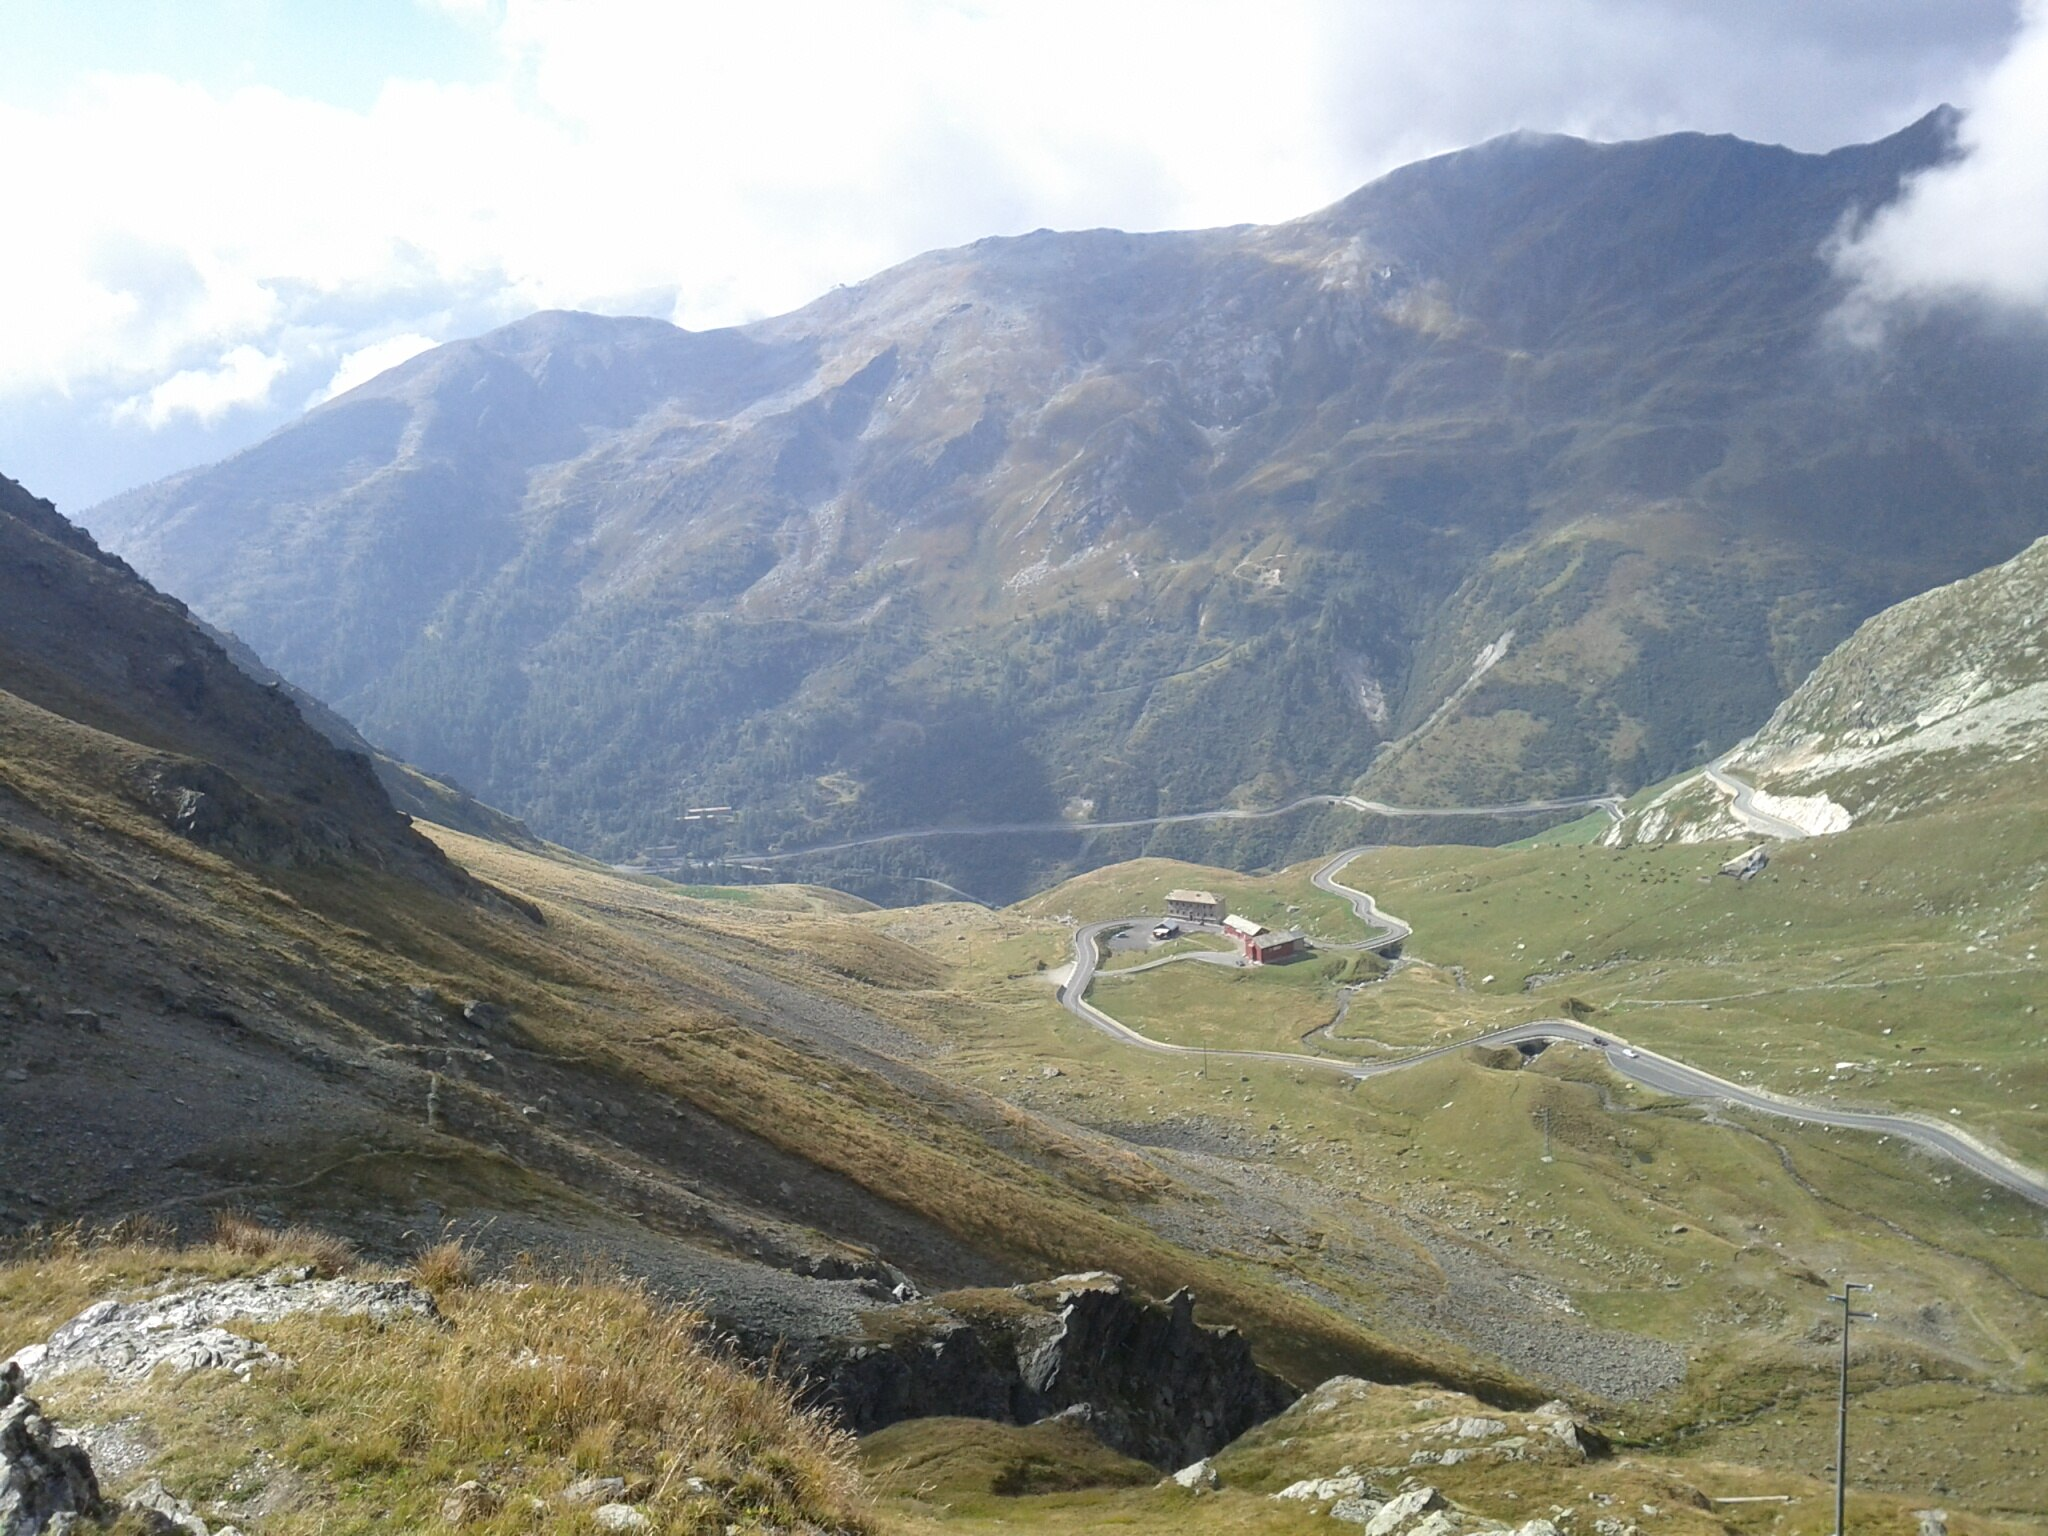 Here's a view of the Italian side of the road to the St Bernard Pass.